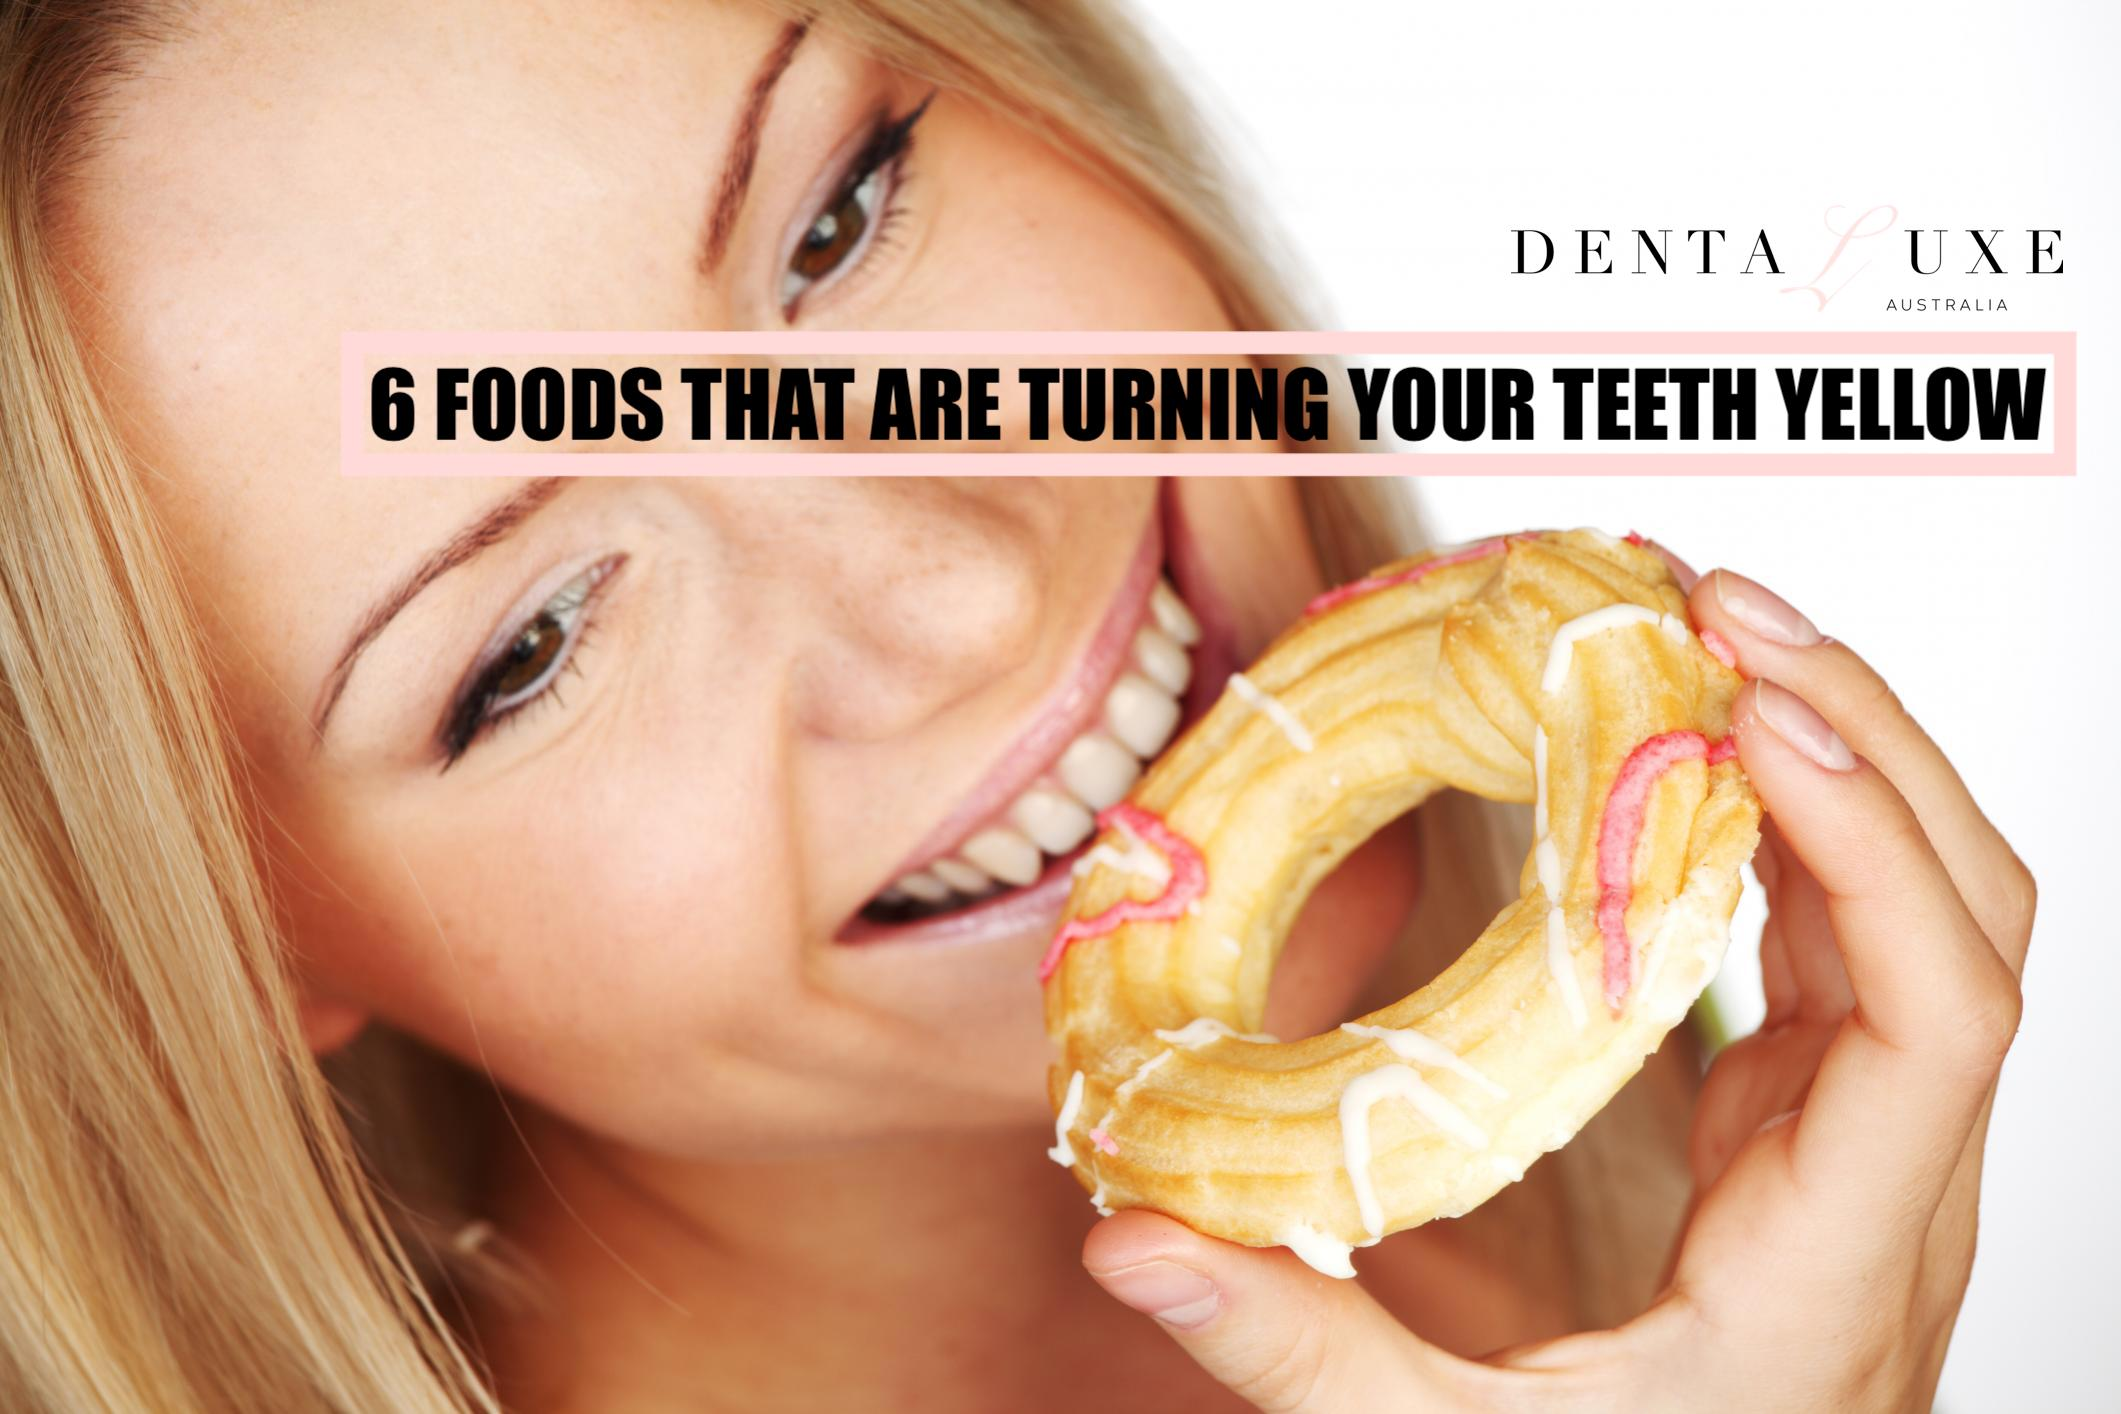 6 Foods That Are Turning Your Teeth Yellow